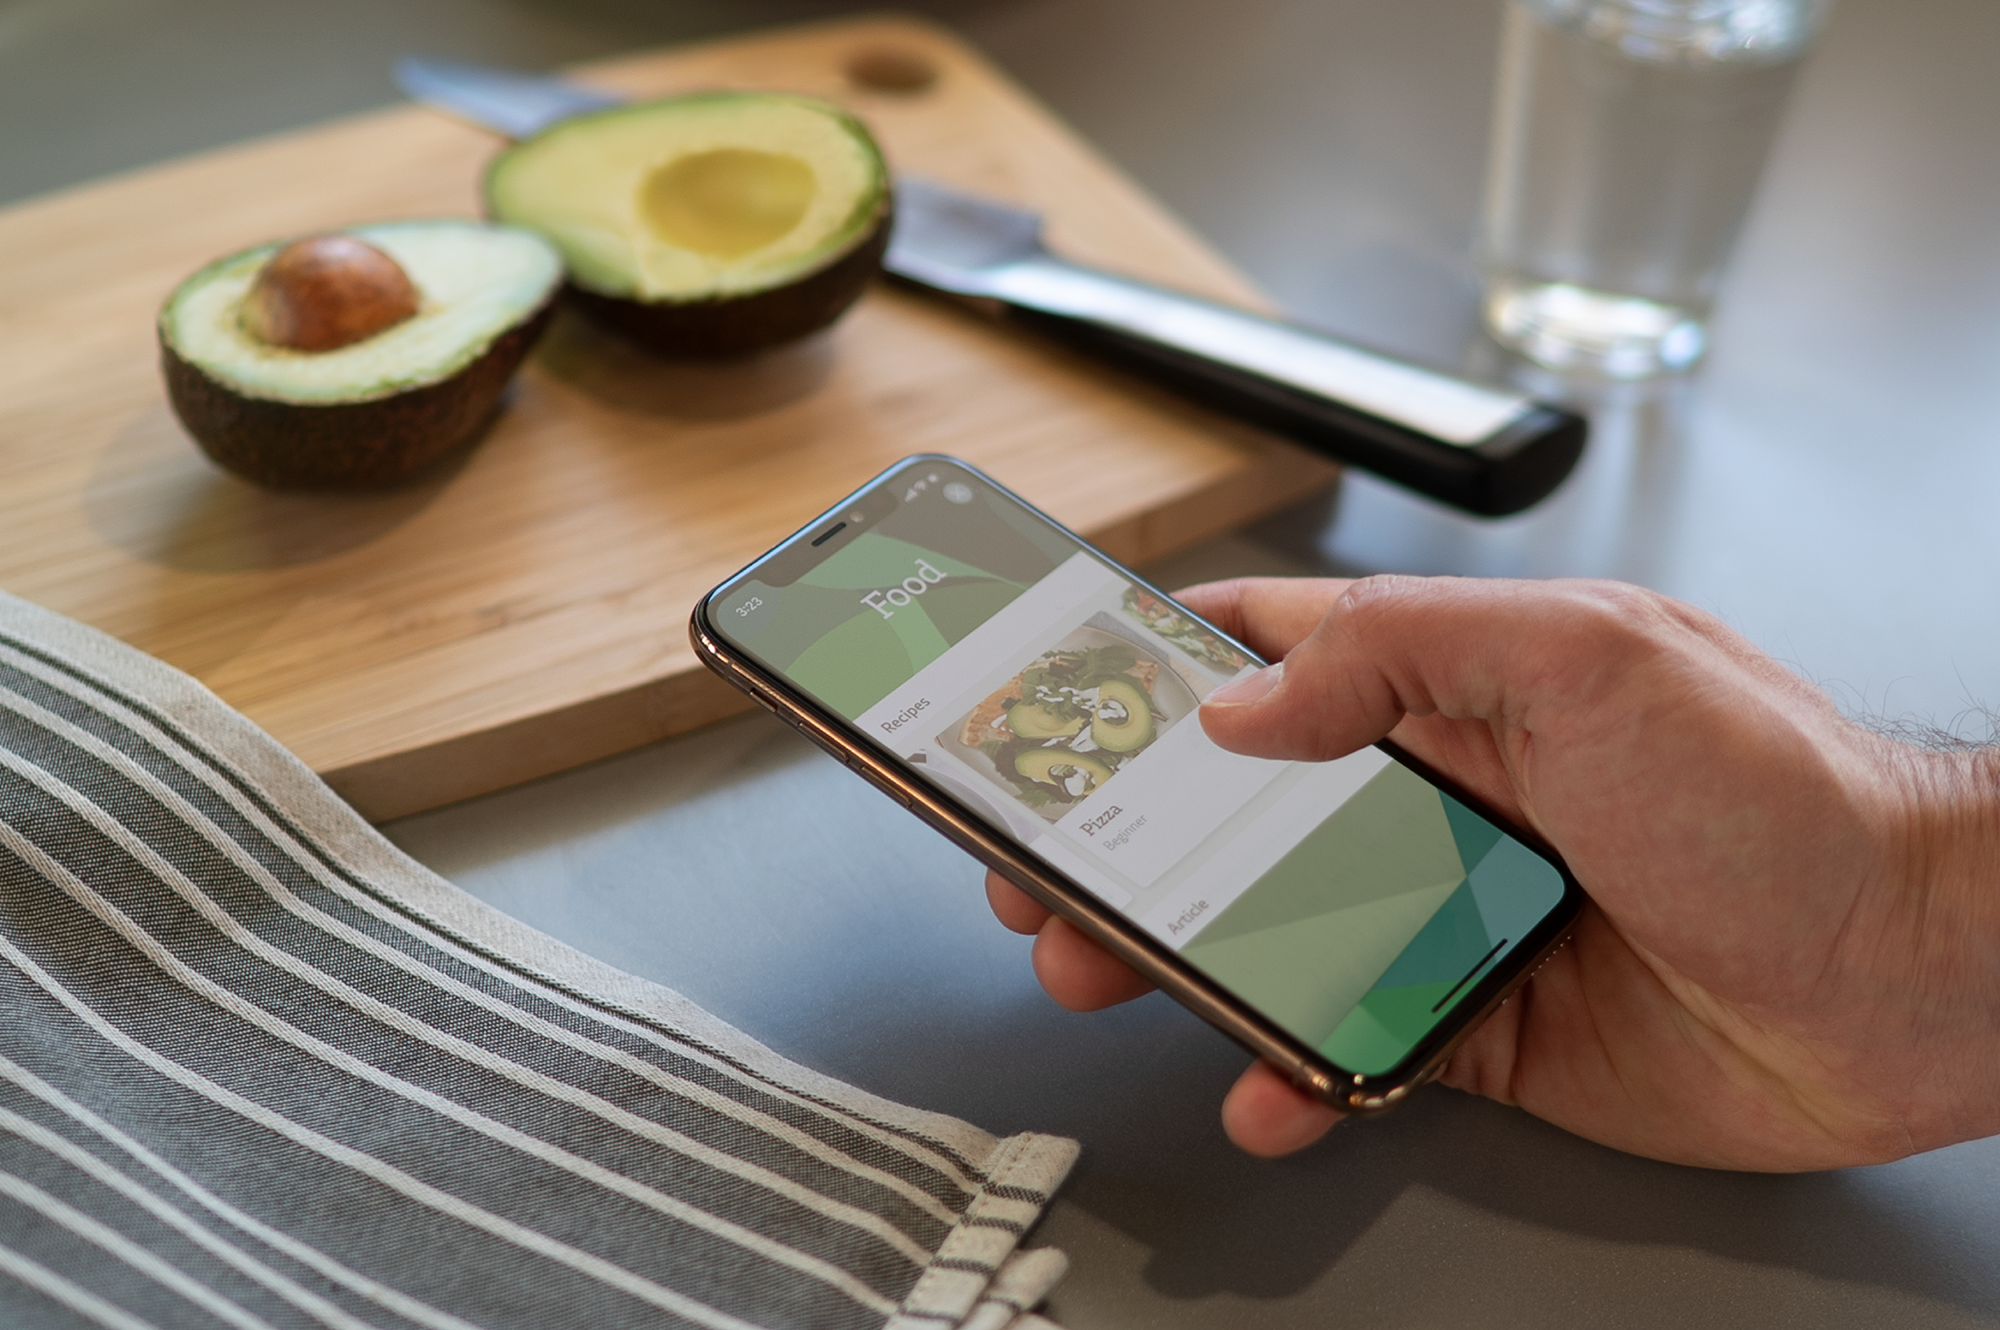 An individual using an app on their phone with a cutting board and an avocado in the background.